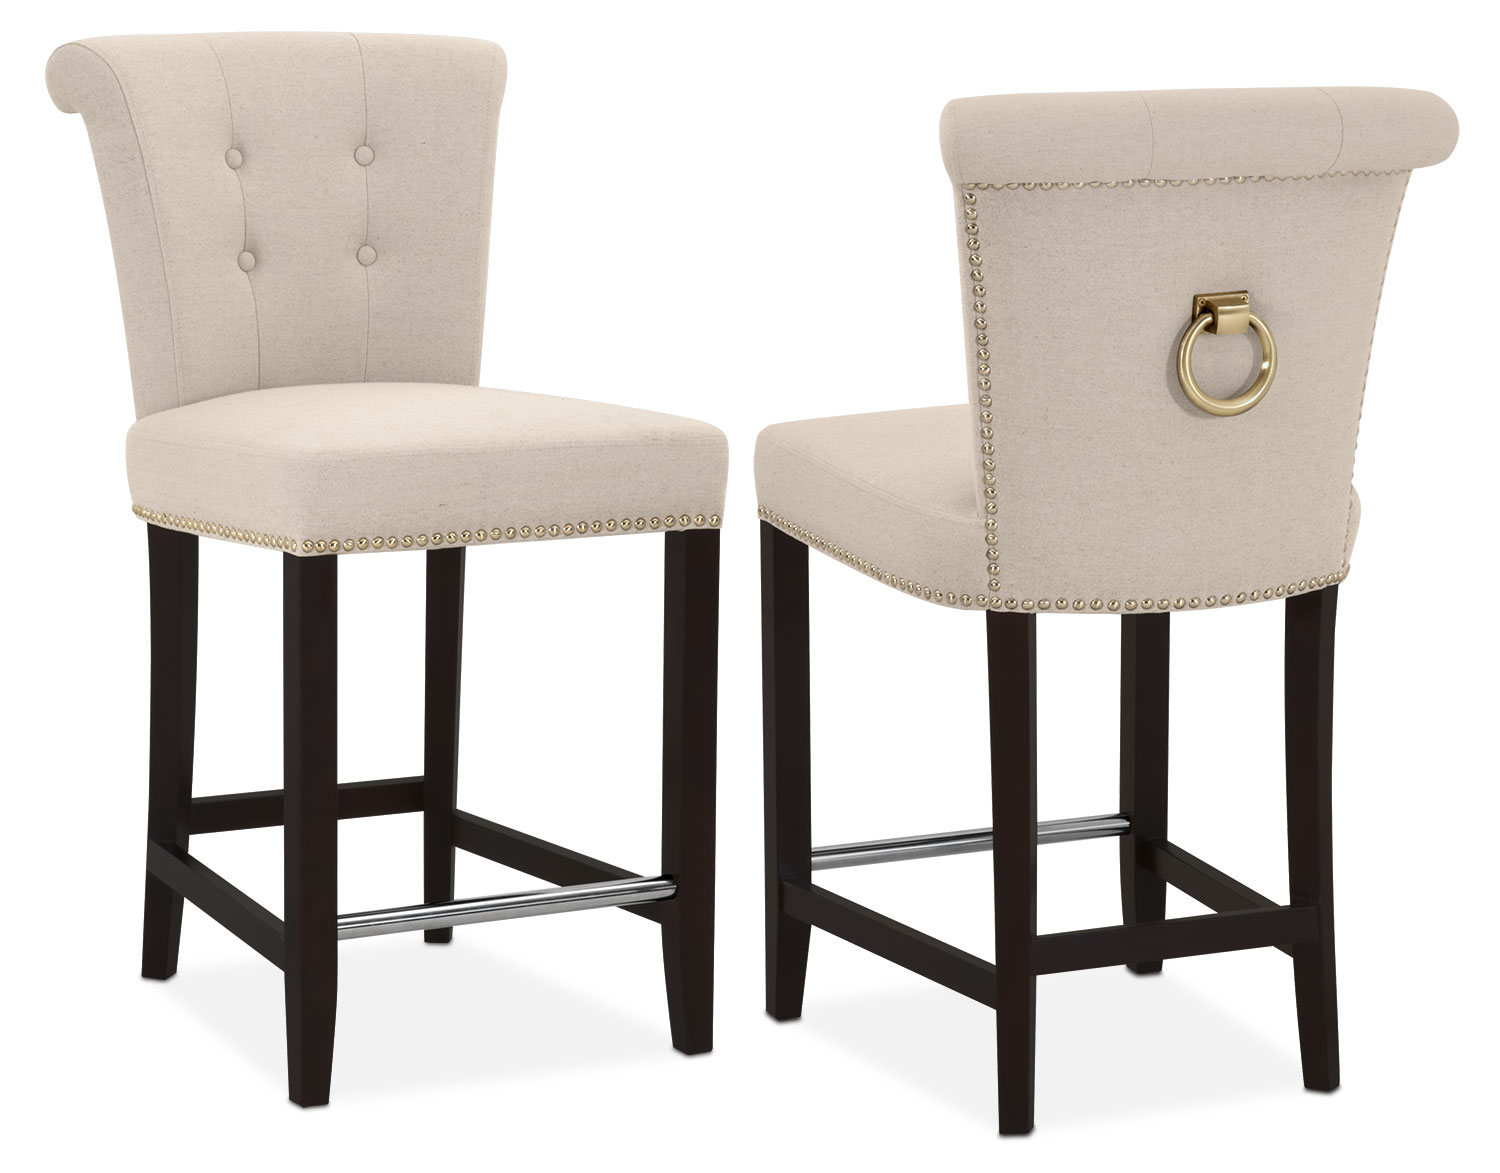 Calloway Counter-Height Stool - Natural/Gold  sc 1 st  American Signature Furniture : bar chair stool - islam-shia.org